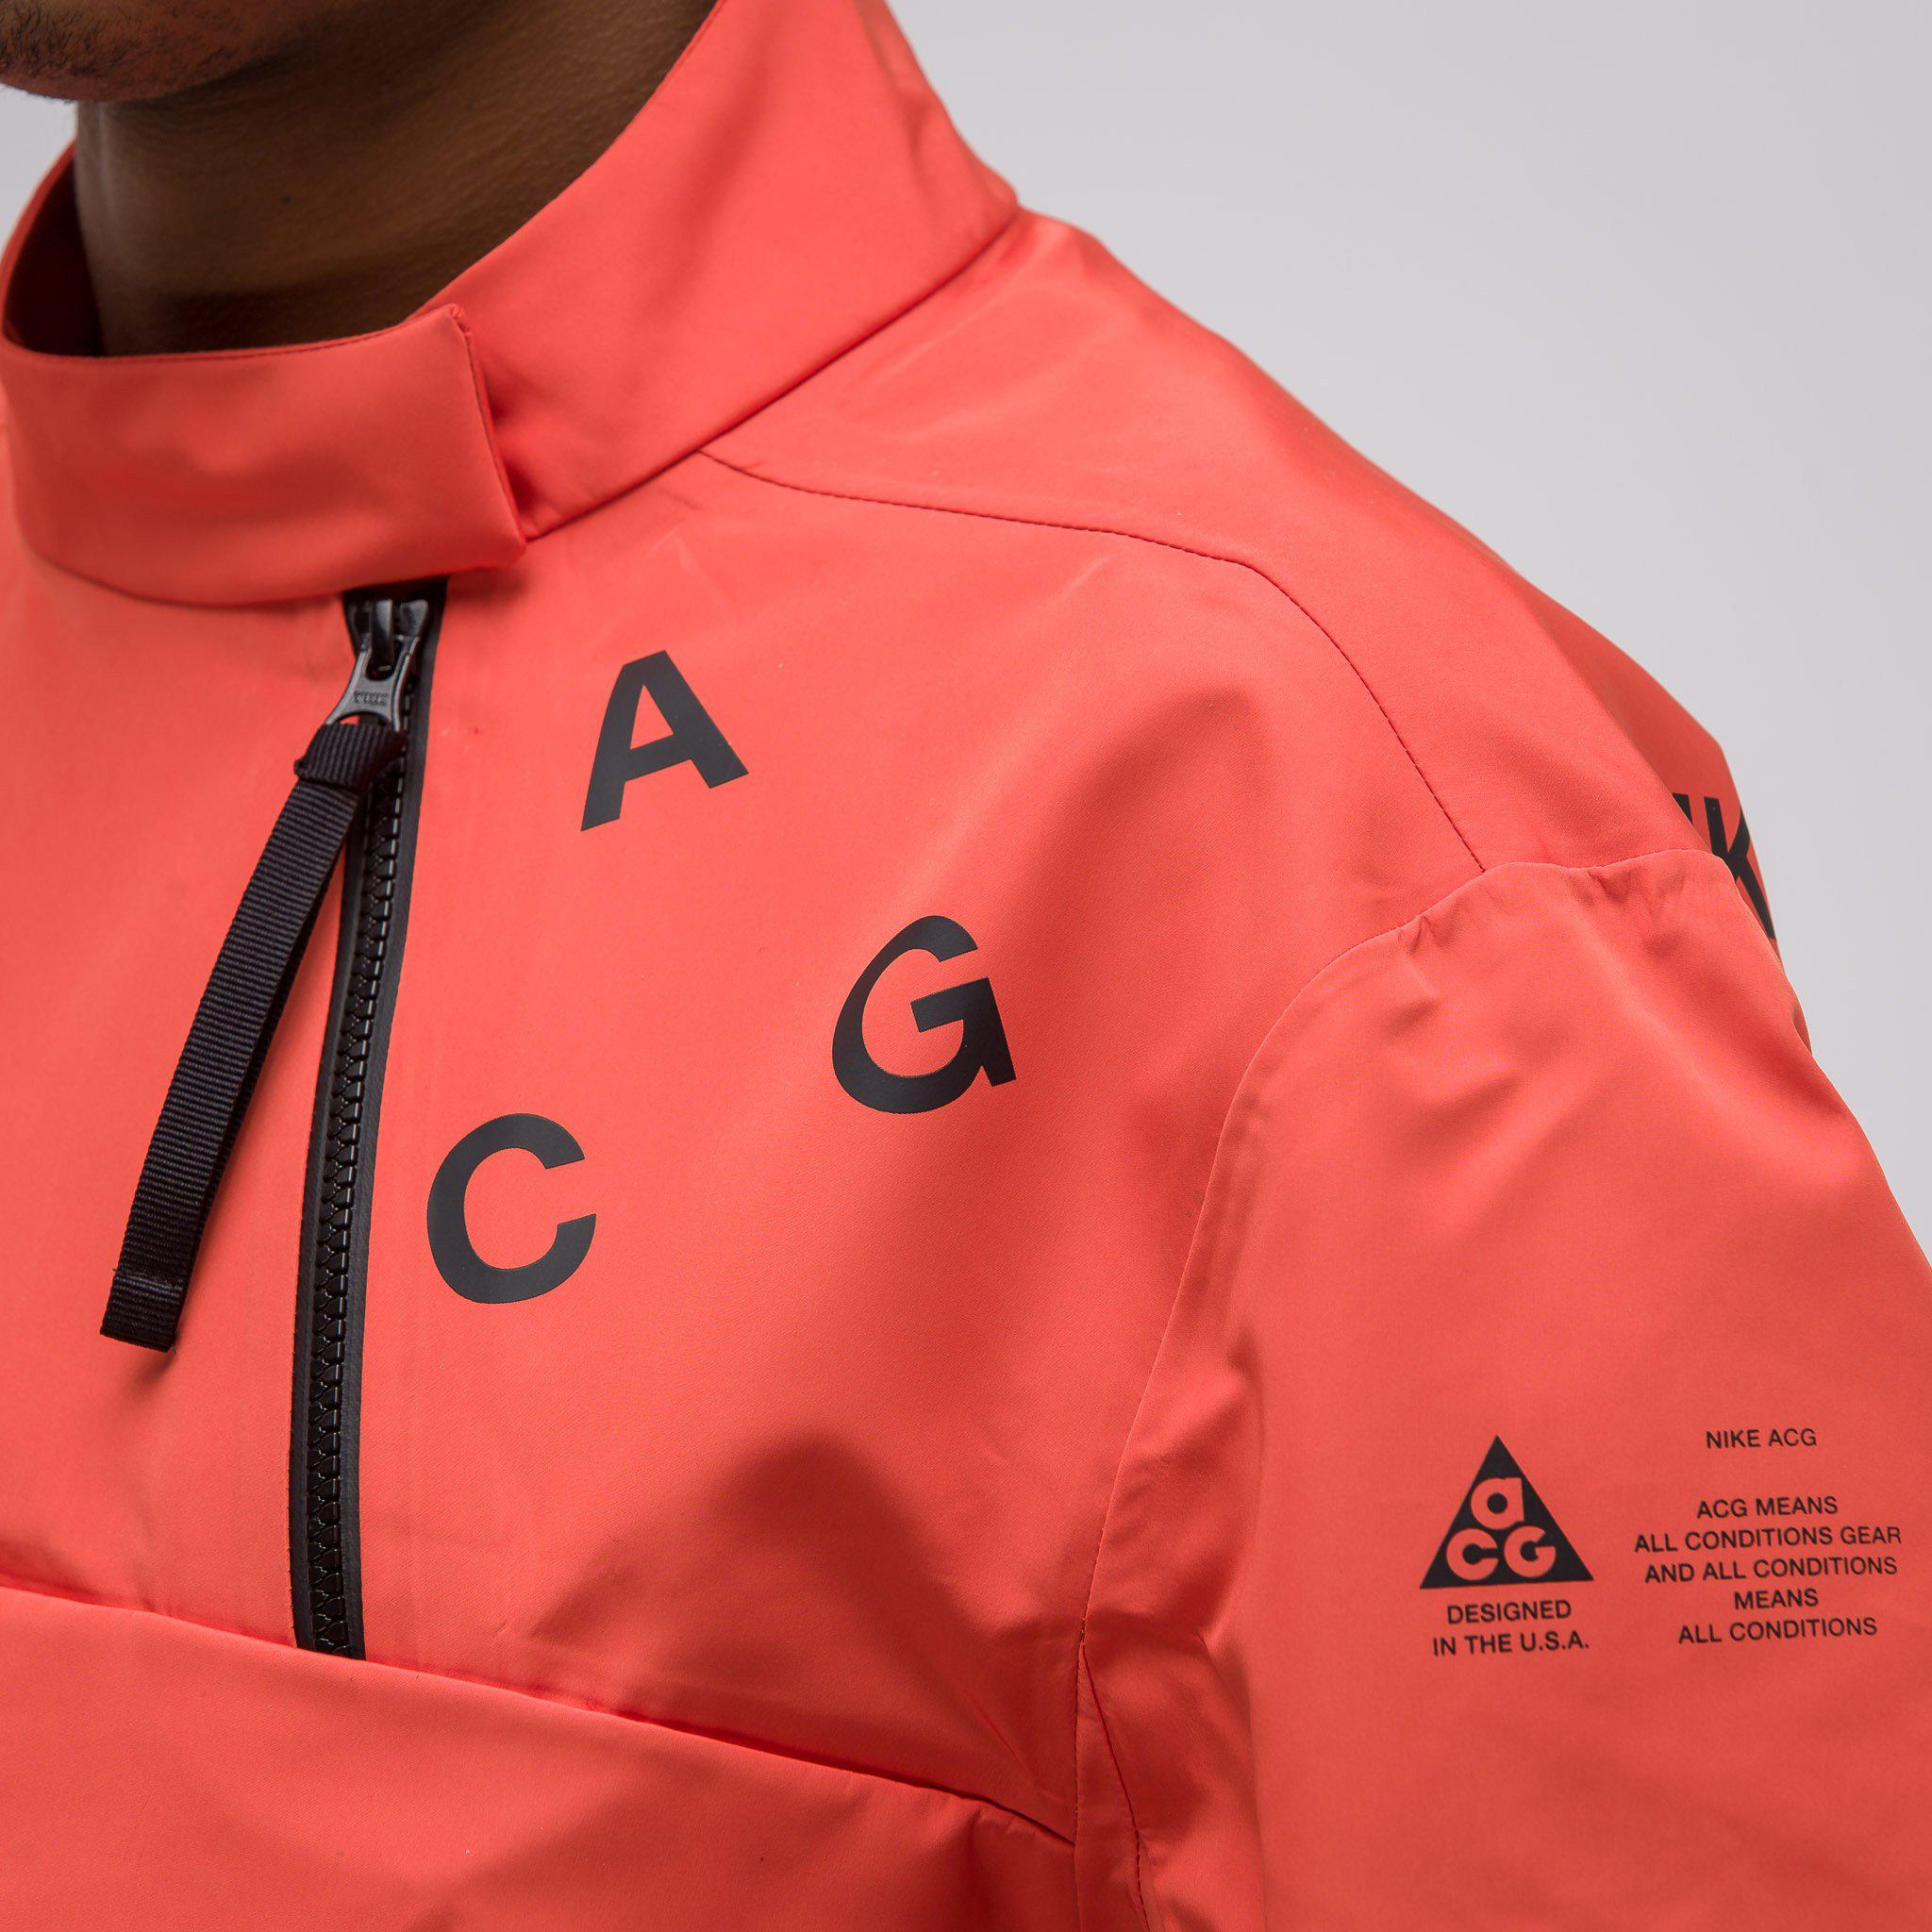 0a83afc060d5 Lyst - Nike Acg Pullover Shell Jacket in Orange for Men